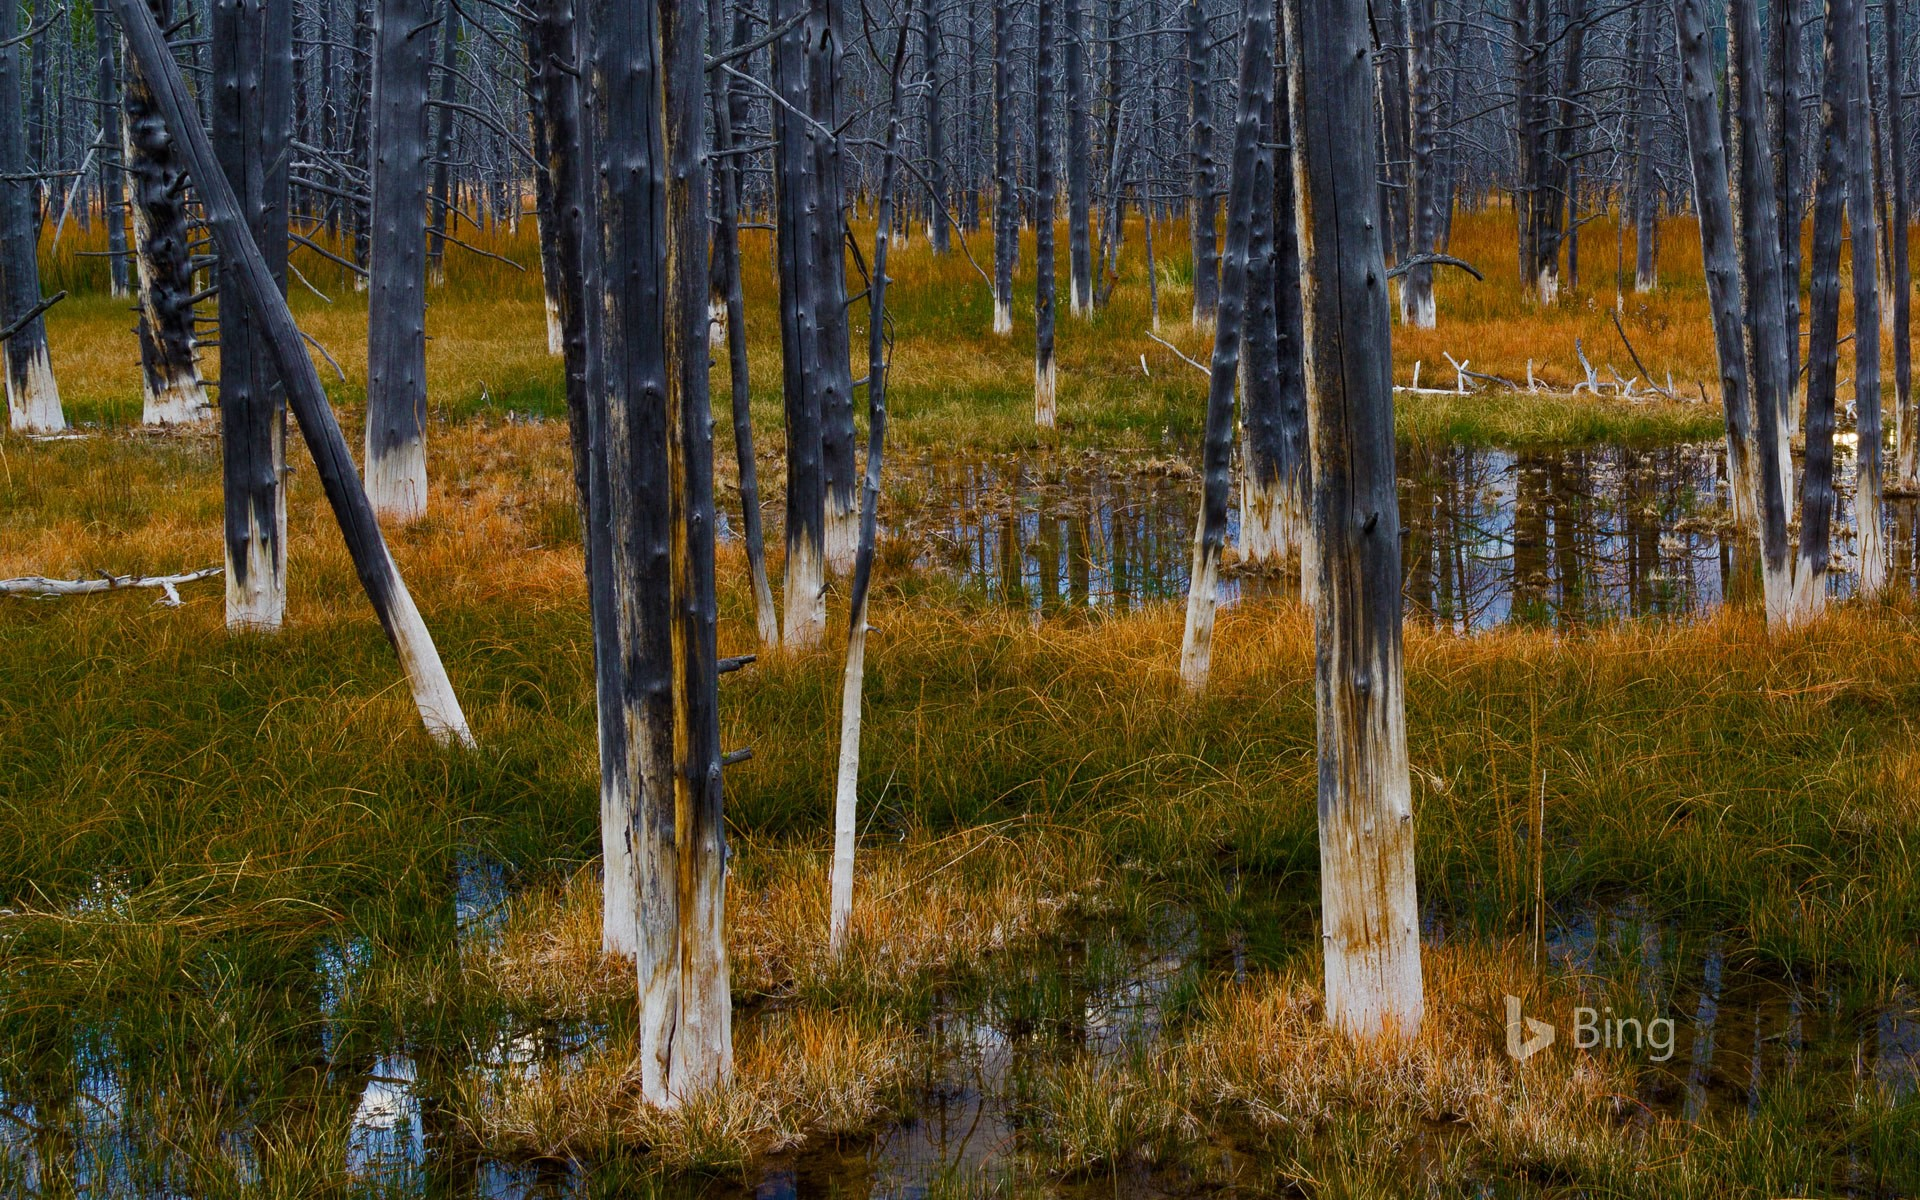 Aftermath of a forest fire in Yellowstone National Park, Wyoming